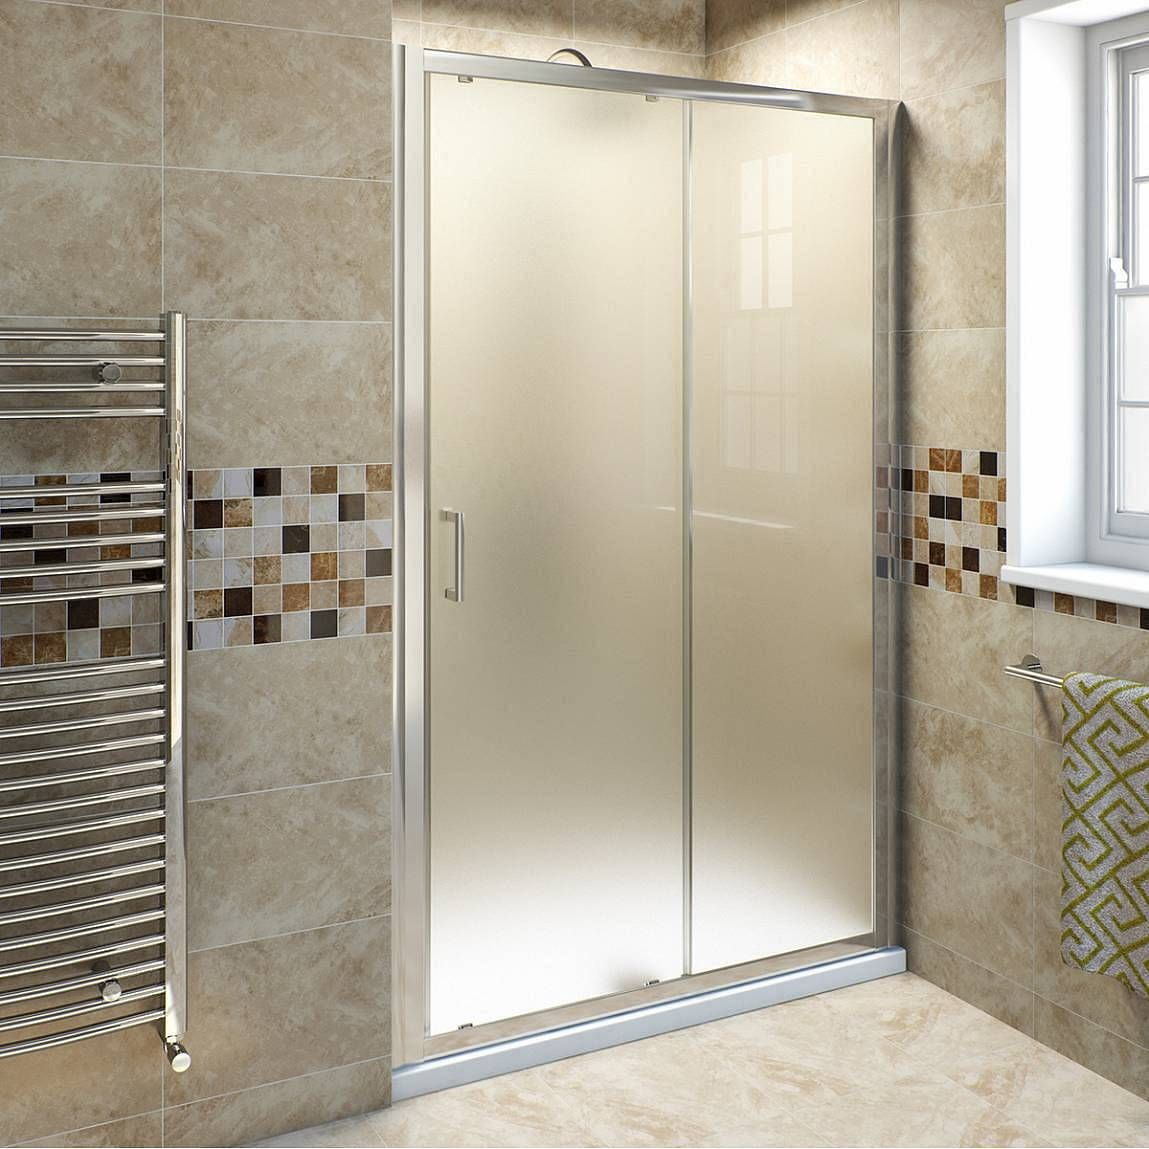 6mm Frosted Glass Sliding Shower Door 1200mm Shower Doors Shower Sliding Glass Door Sliding Shower Door